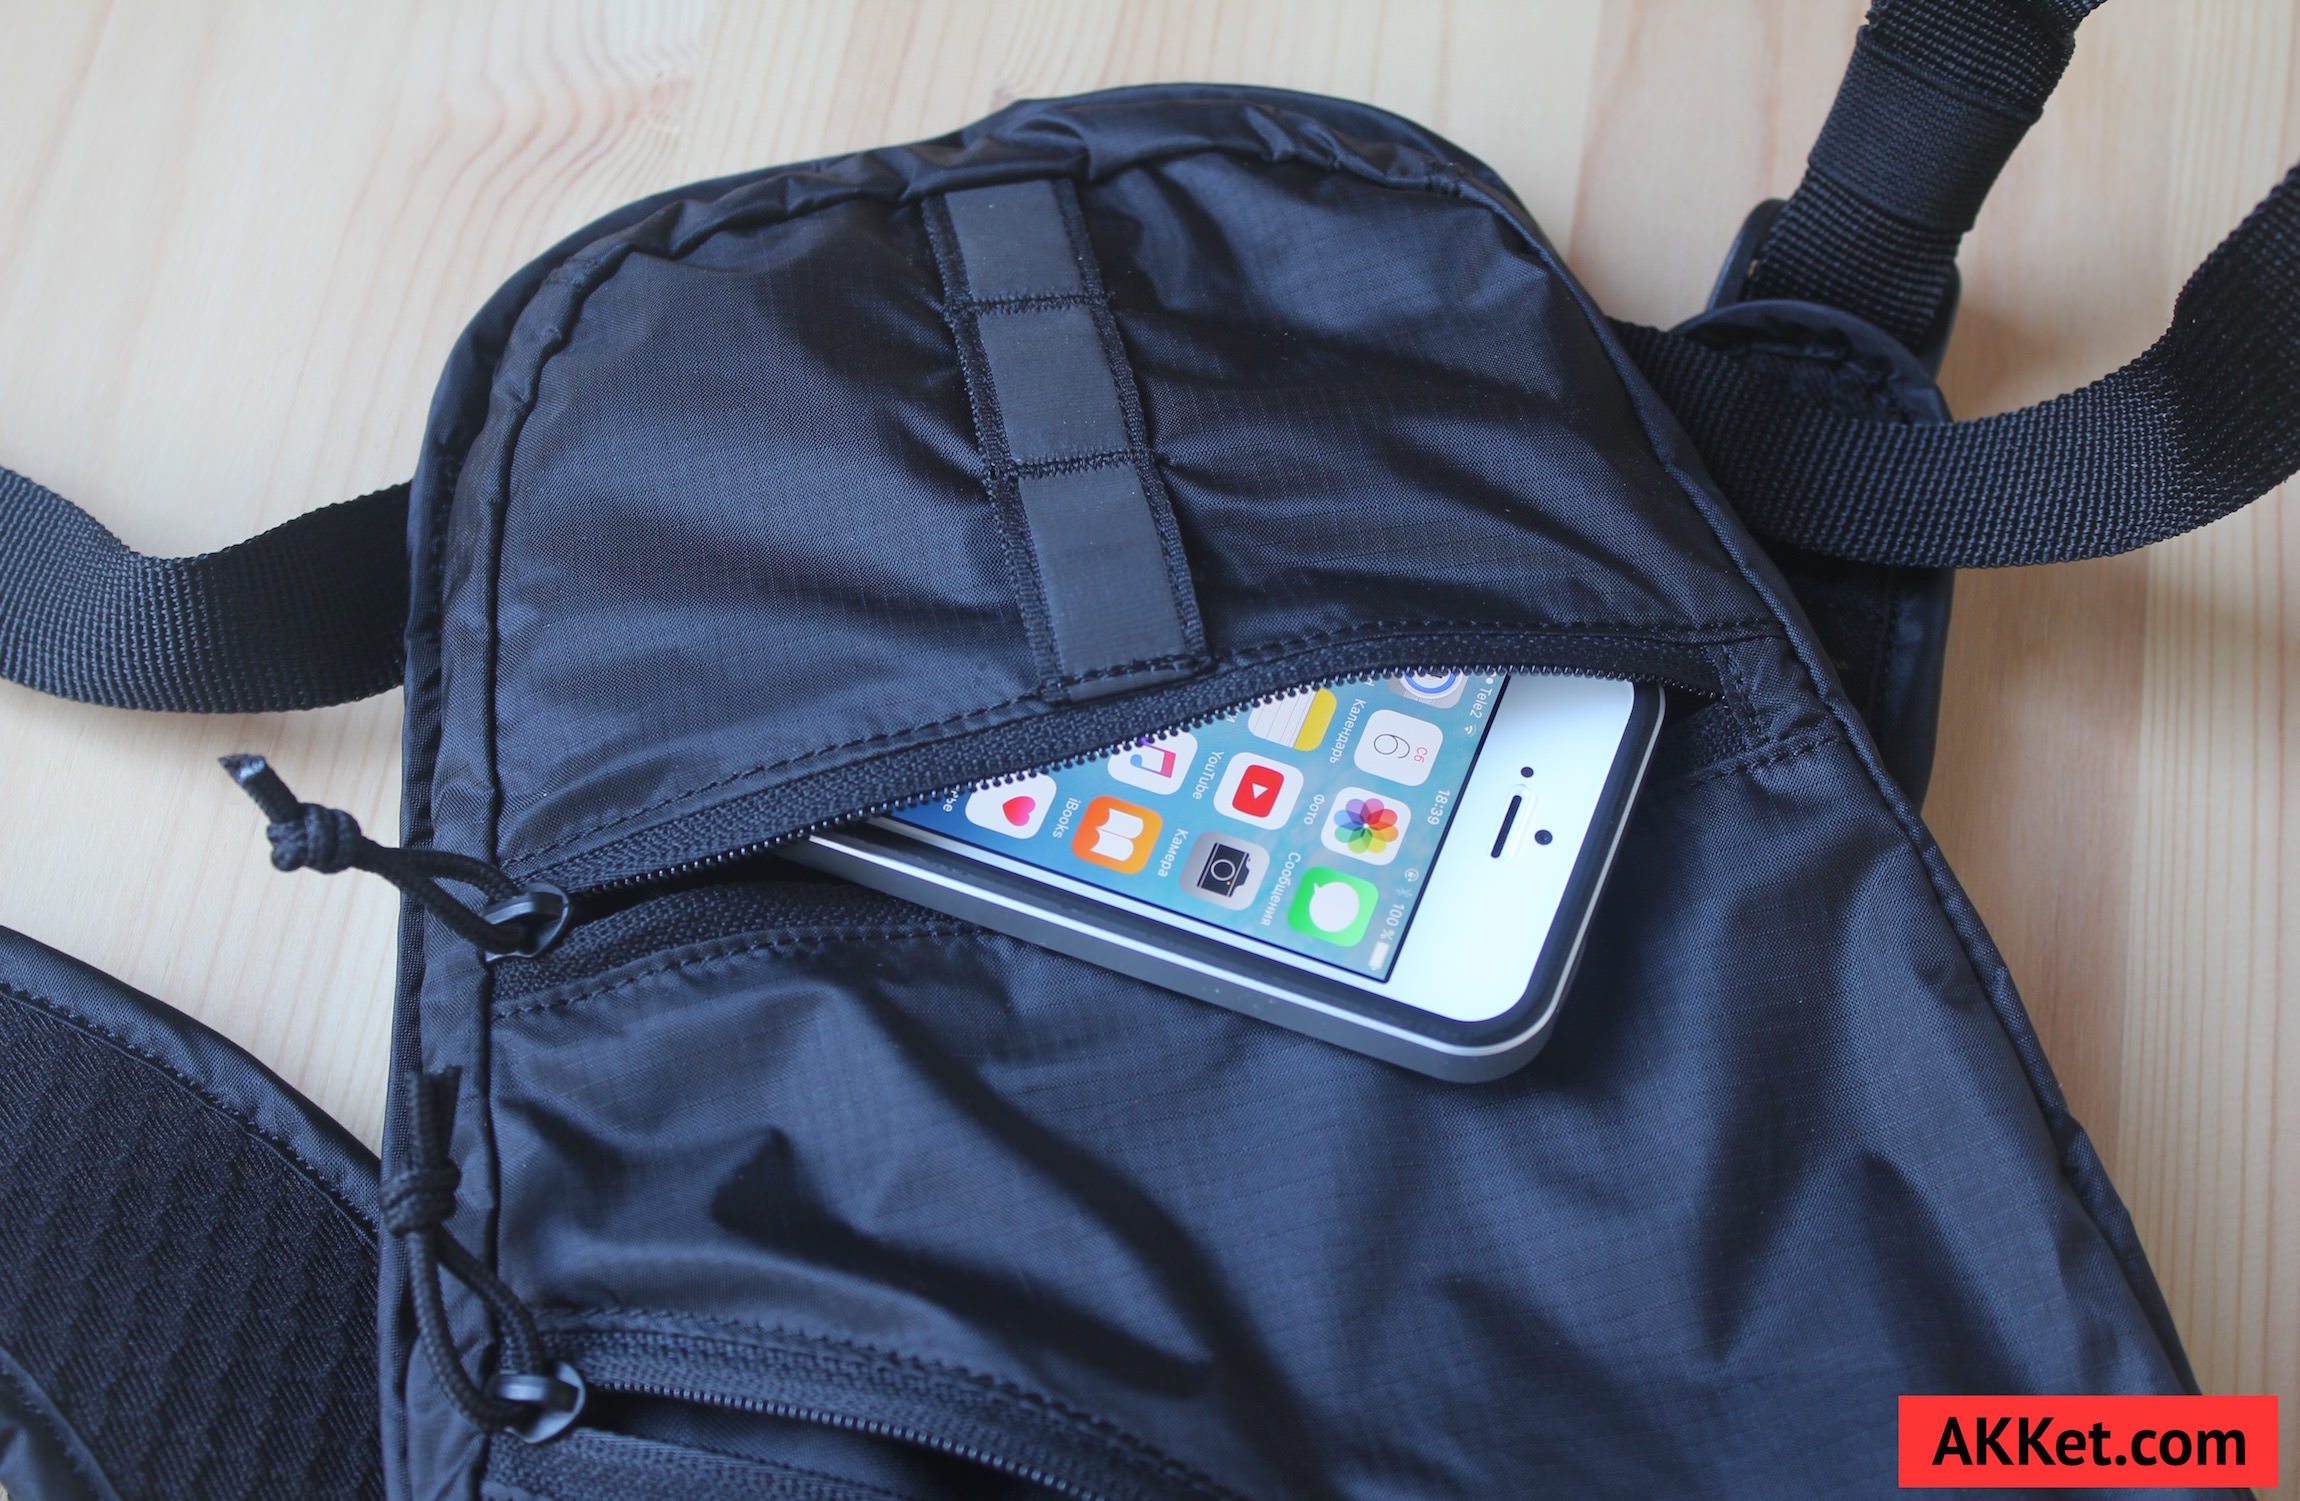 Fox Low Pro backpack iPad mini iPhone 8